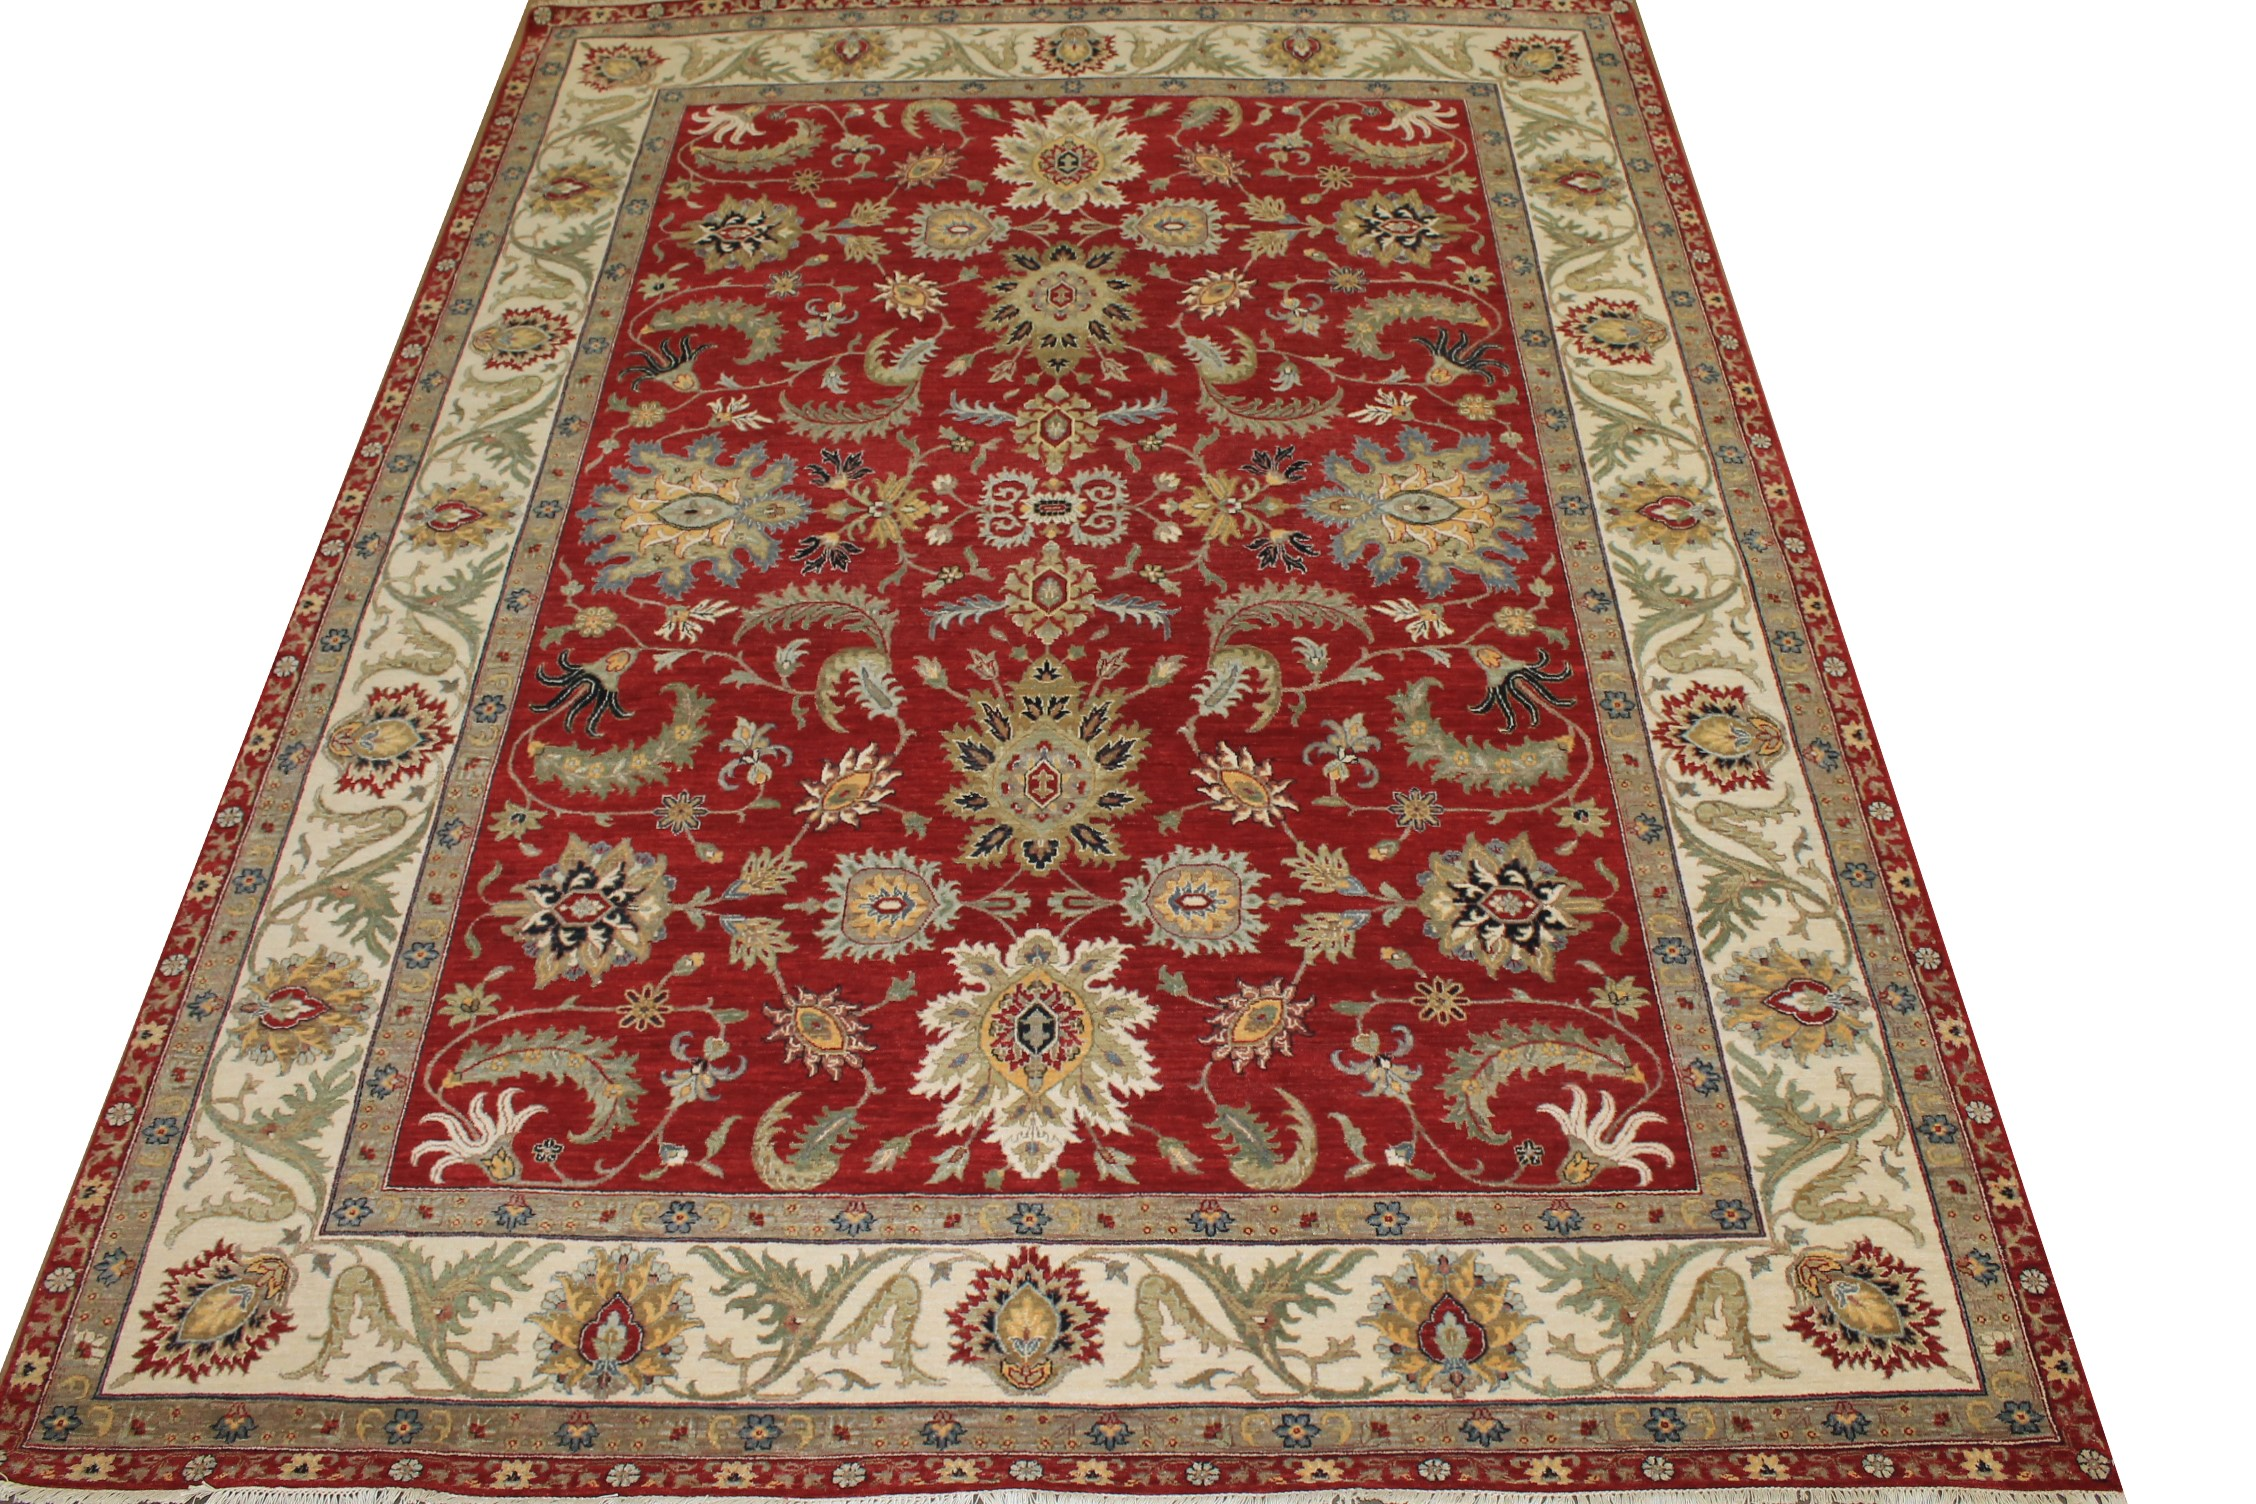 9x12 Traditional Hand Knotted Wool Area Rug - MR025042